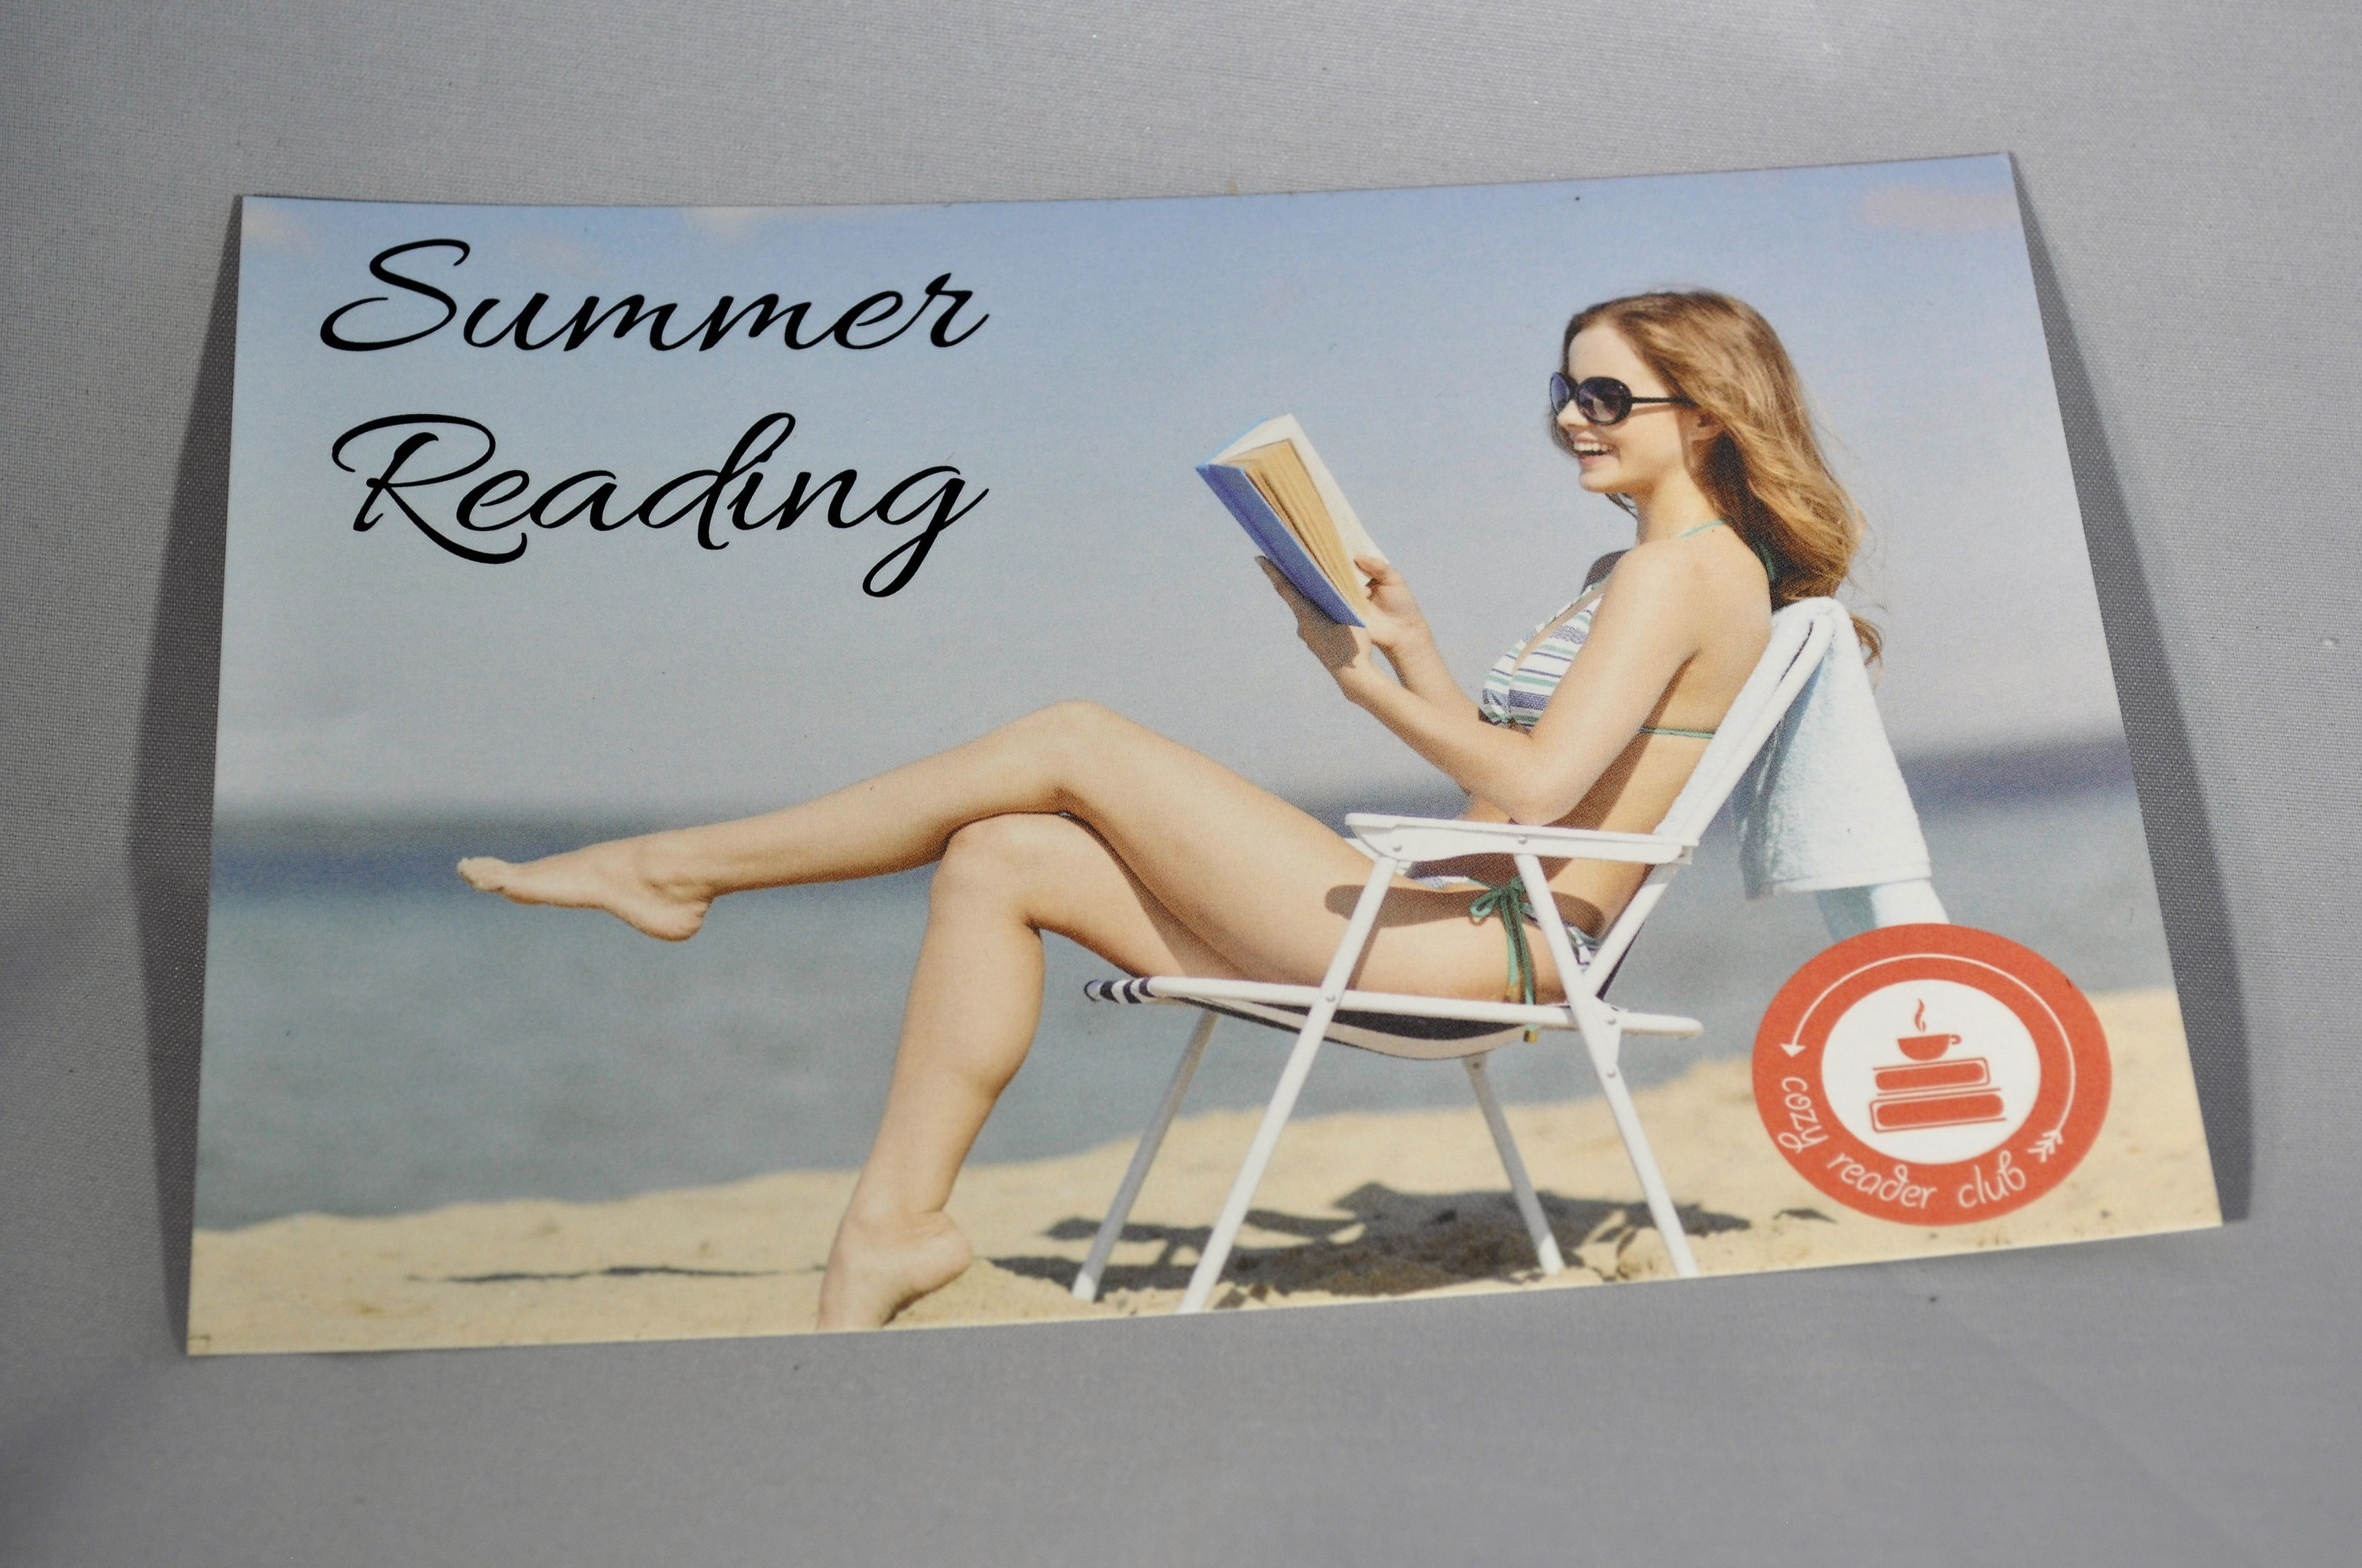 Cozy Reader Club July 2016 Insert Front